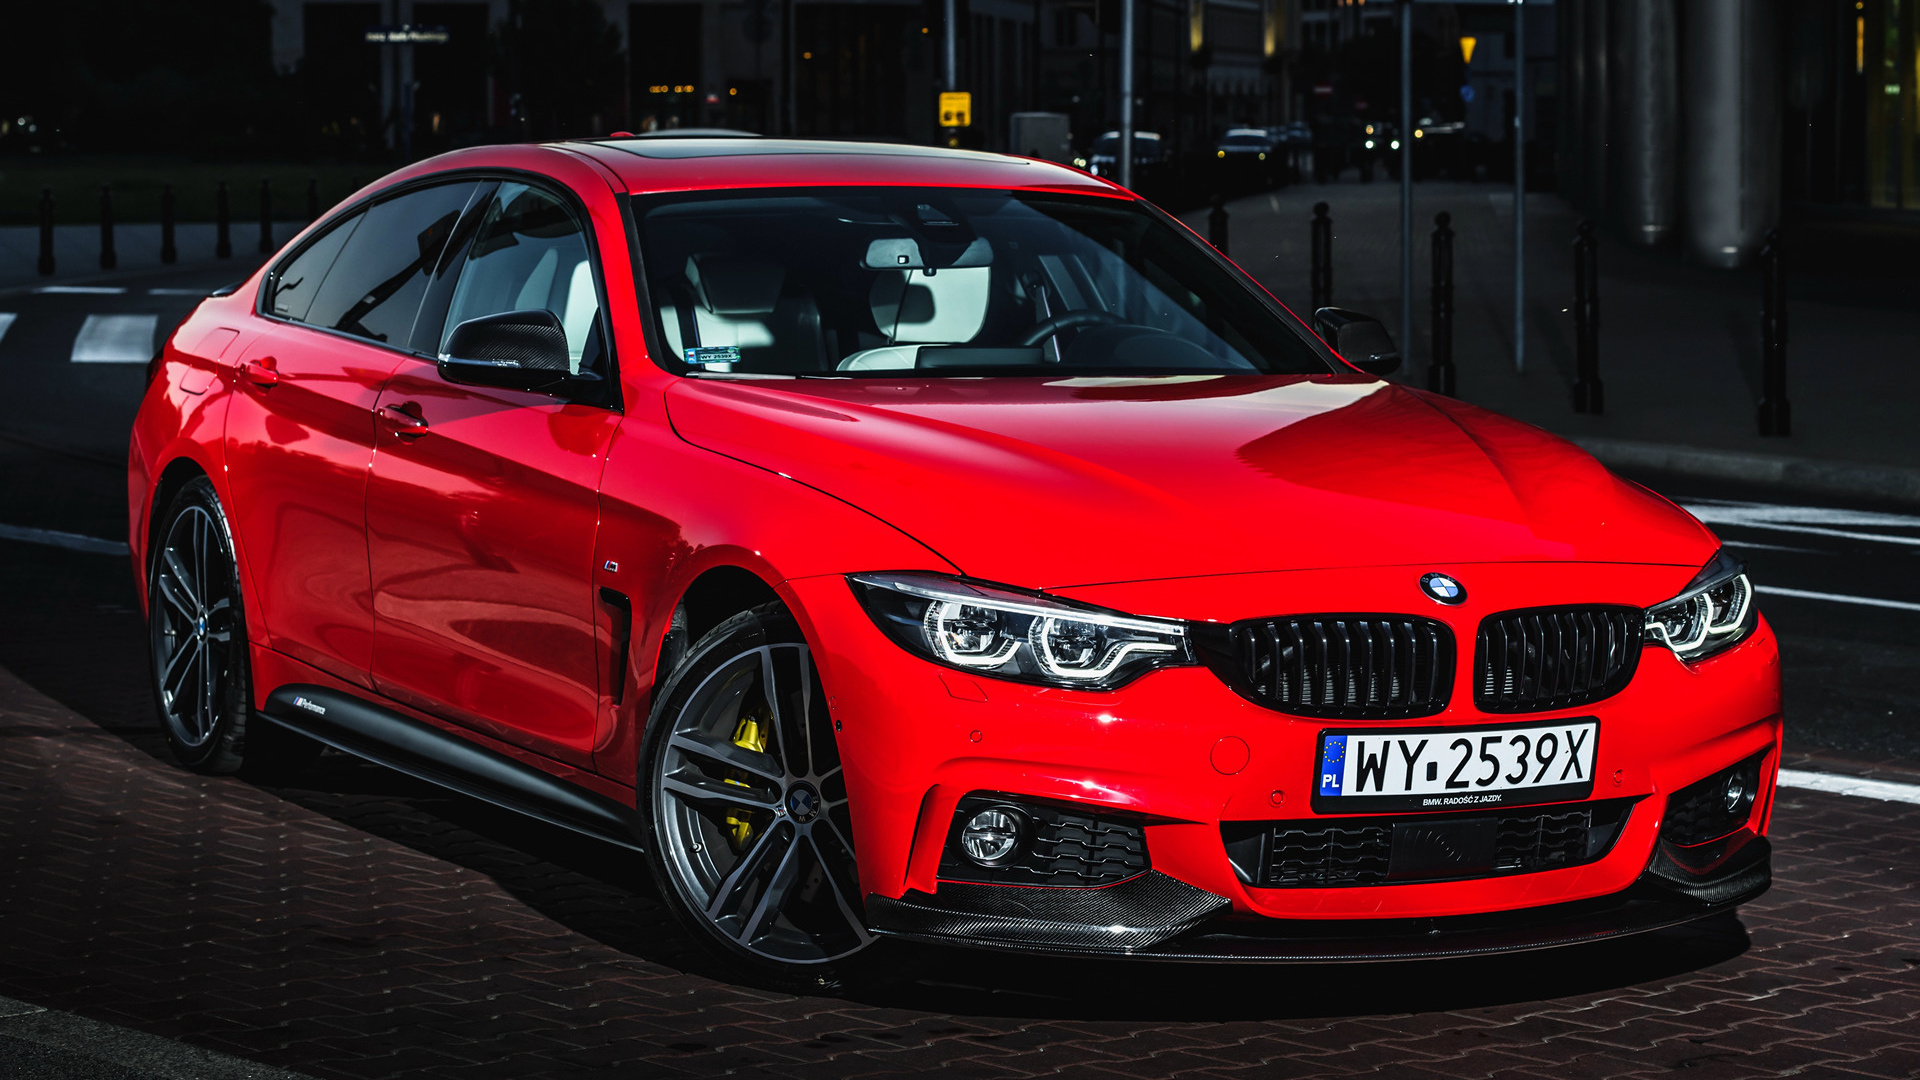 2017 Bmw 4 Series Gran Coupe With M Performance Parts